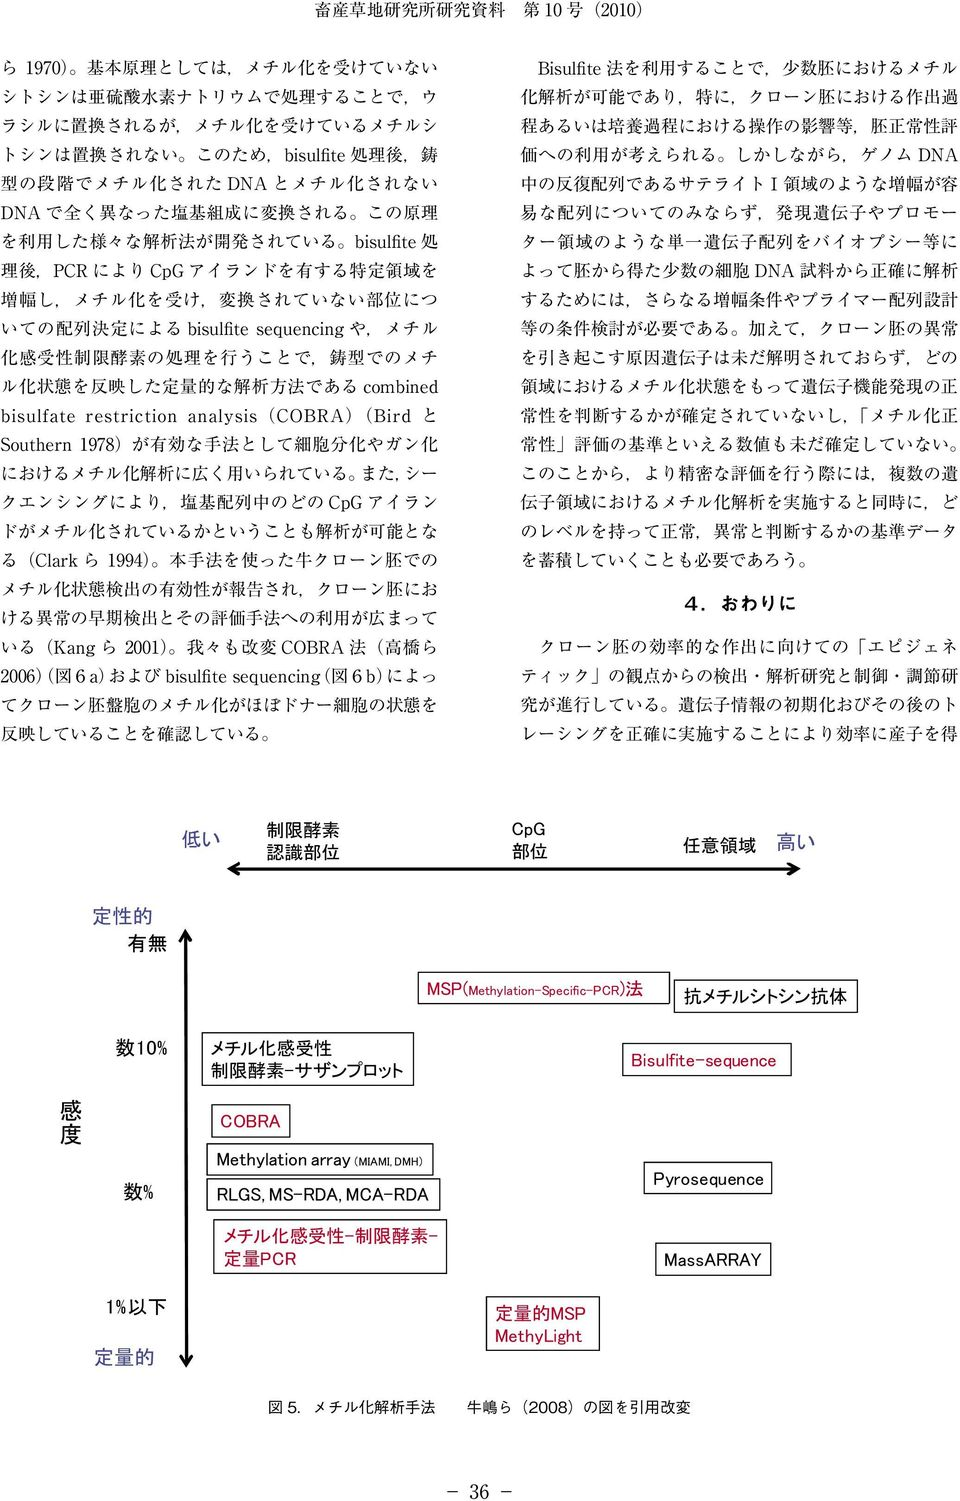 bisulfite sequencing や,メチル 化 感 受 性 制 限 酵 素 の 処 理 を 行 うことで, 鋳 型 でのメチ ル 化 状 態 を 反 映 した 定 量 的 な 解 析 方 法 である combined bisulfate restriction analysis(cobra)(bird と Southern 1978)が 有 効 な 手 法 として 細 胞 分 化